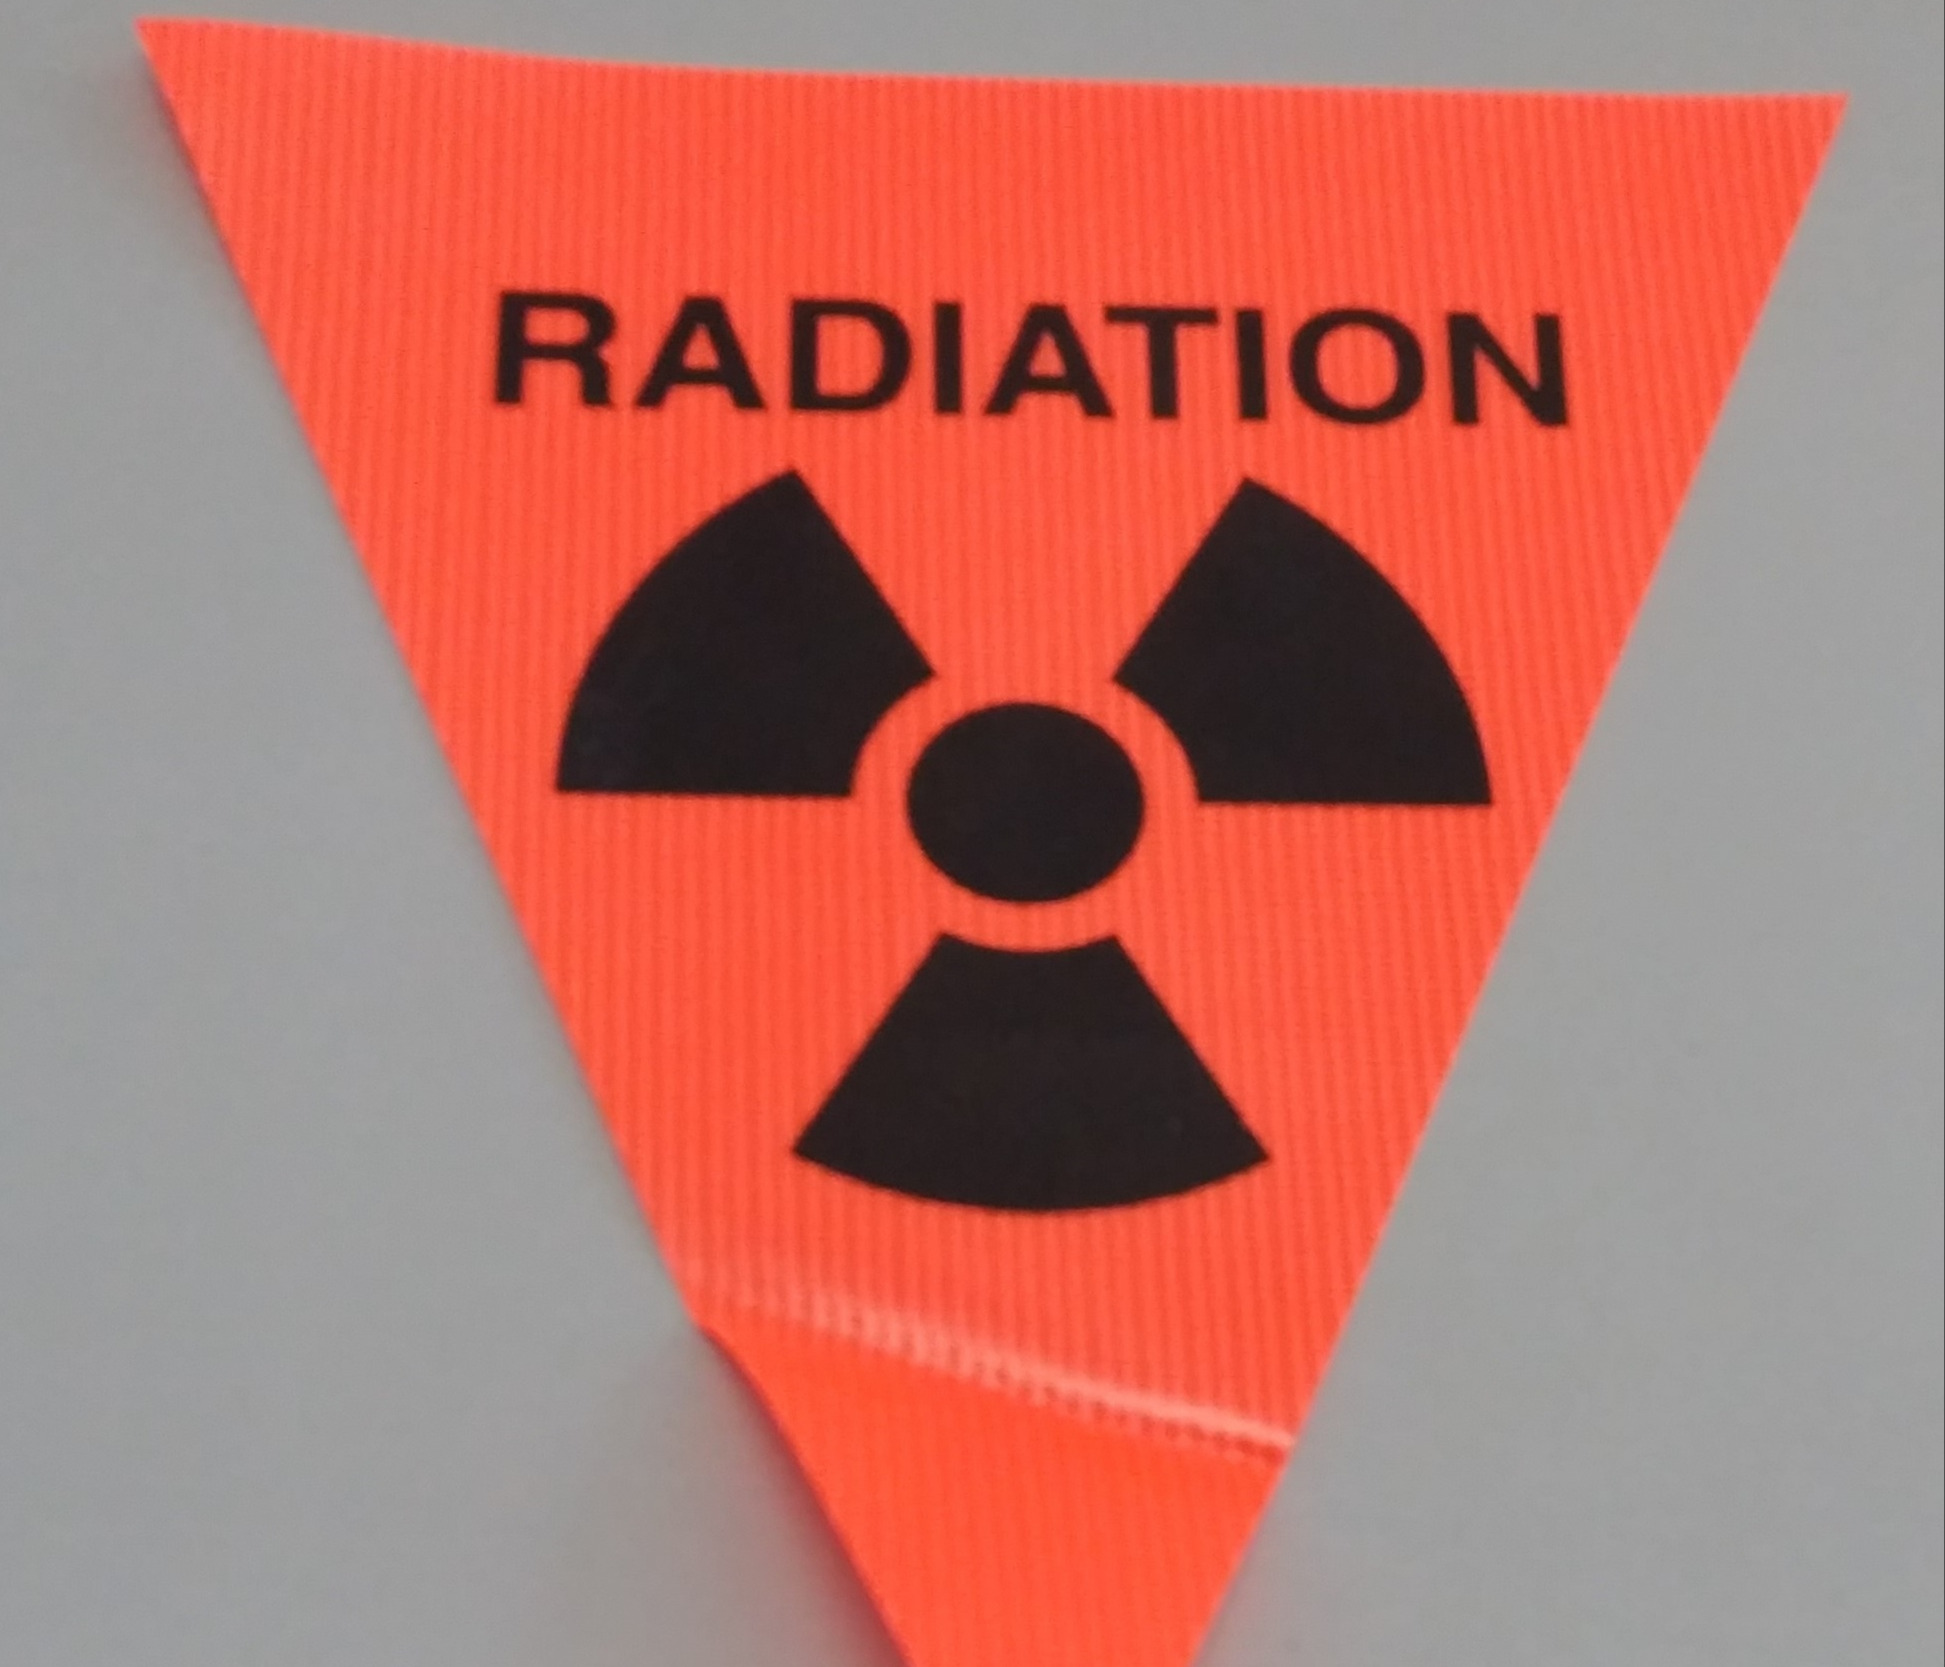 Radiation (orange)